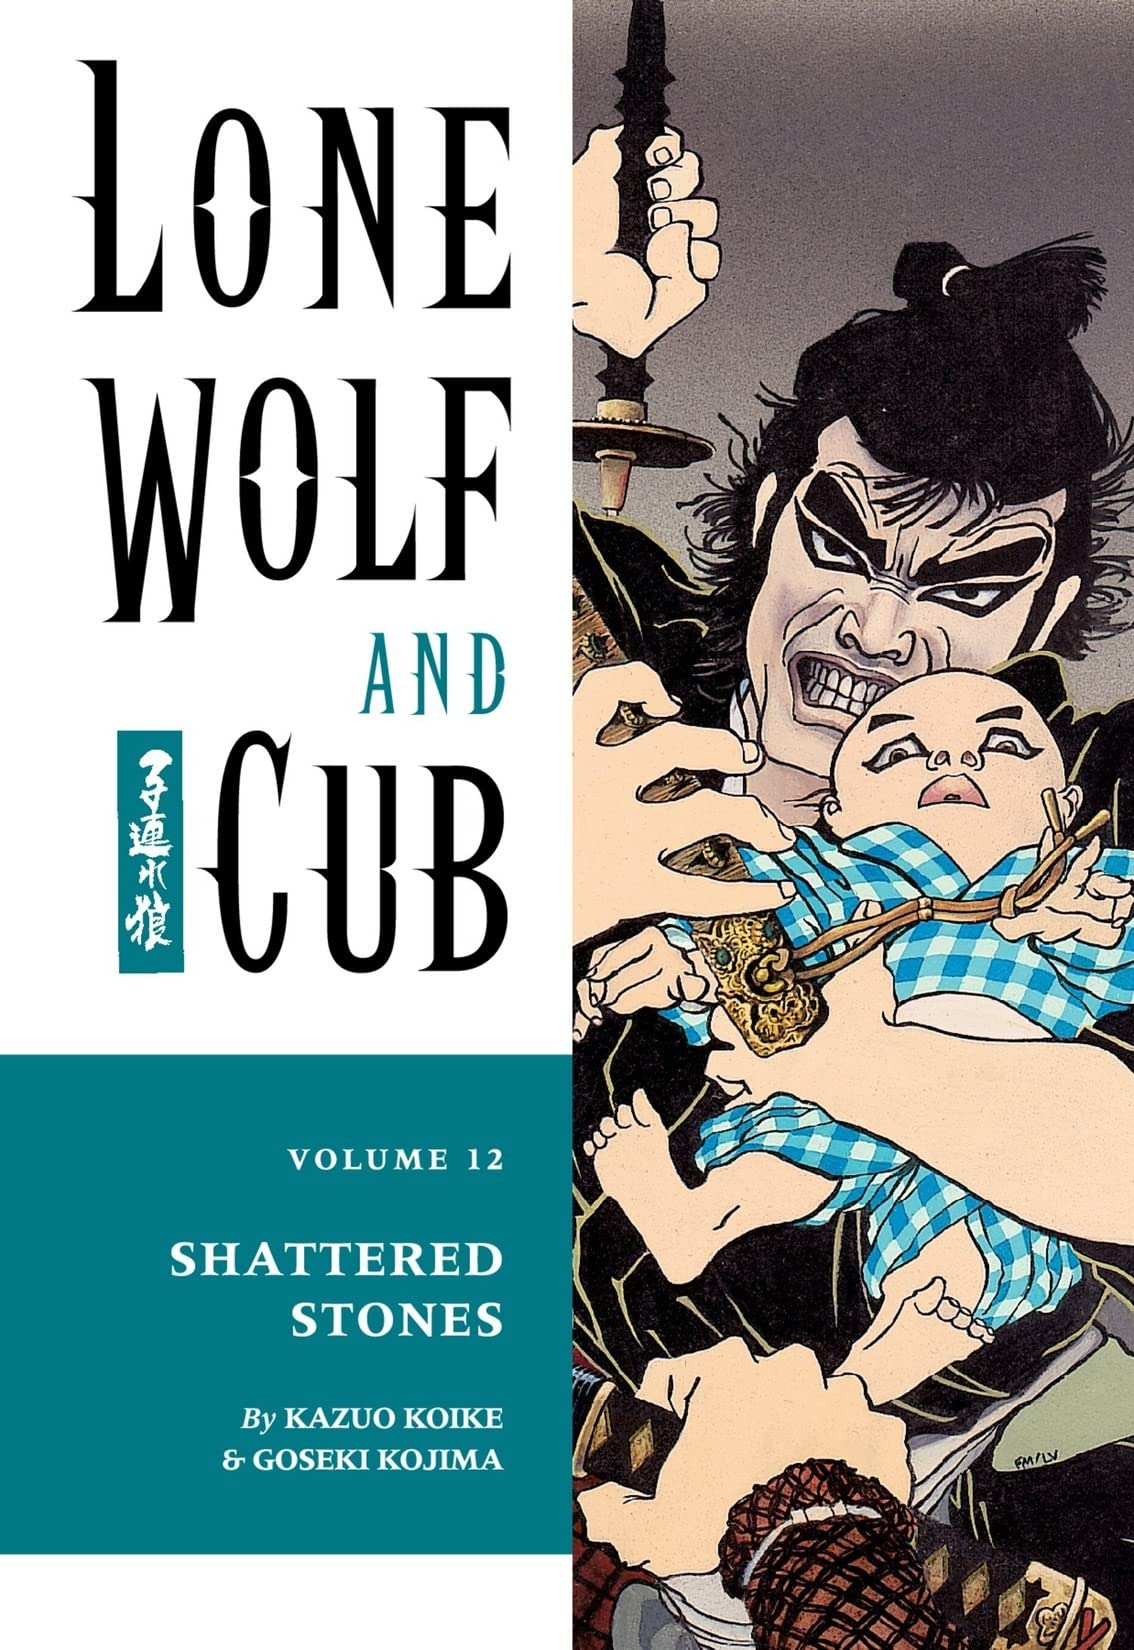 Lone Wolf and Cub Vol. 12: Shattered Stones